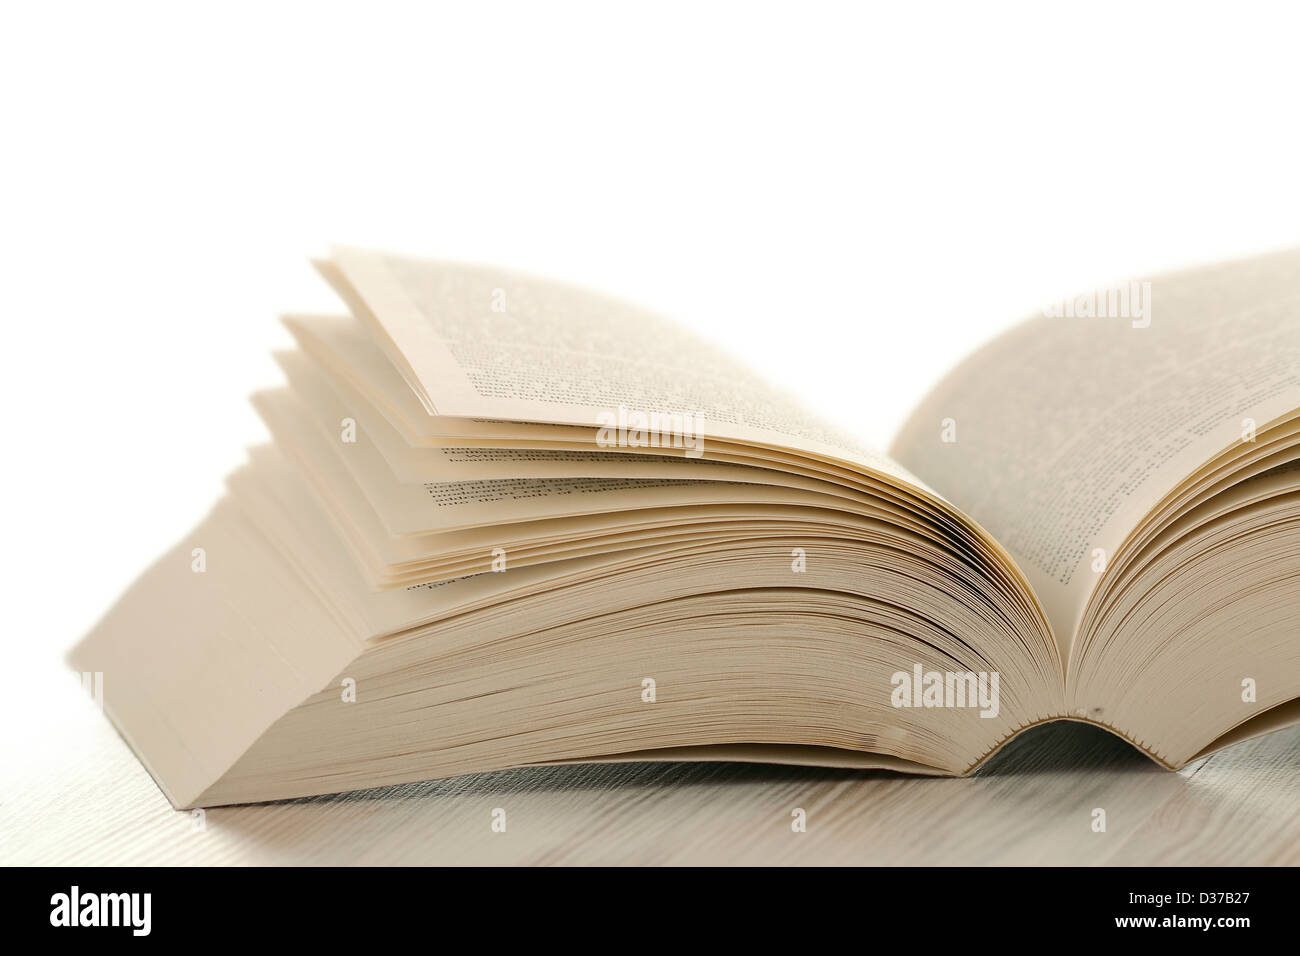 Book on the table over white background - Stock Image